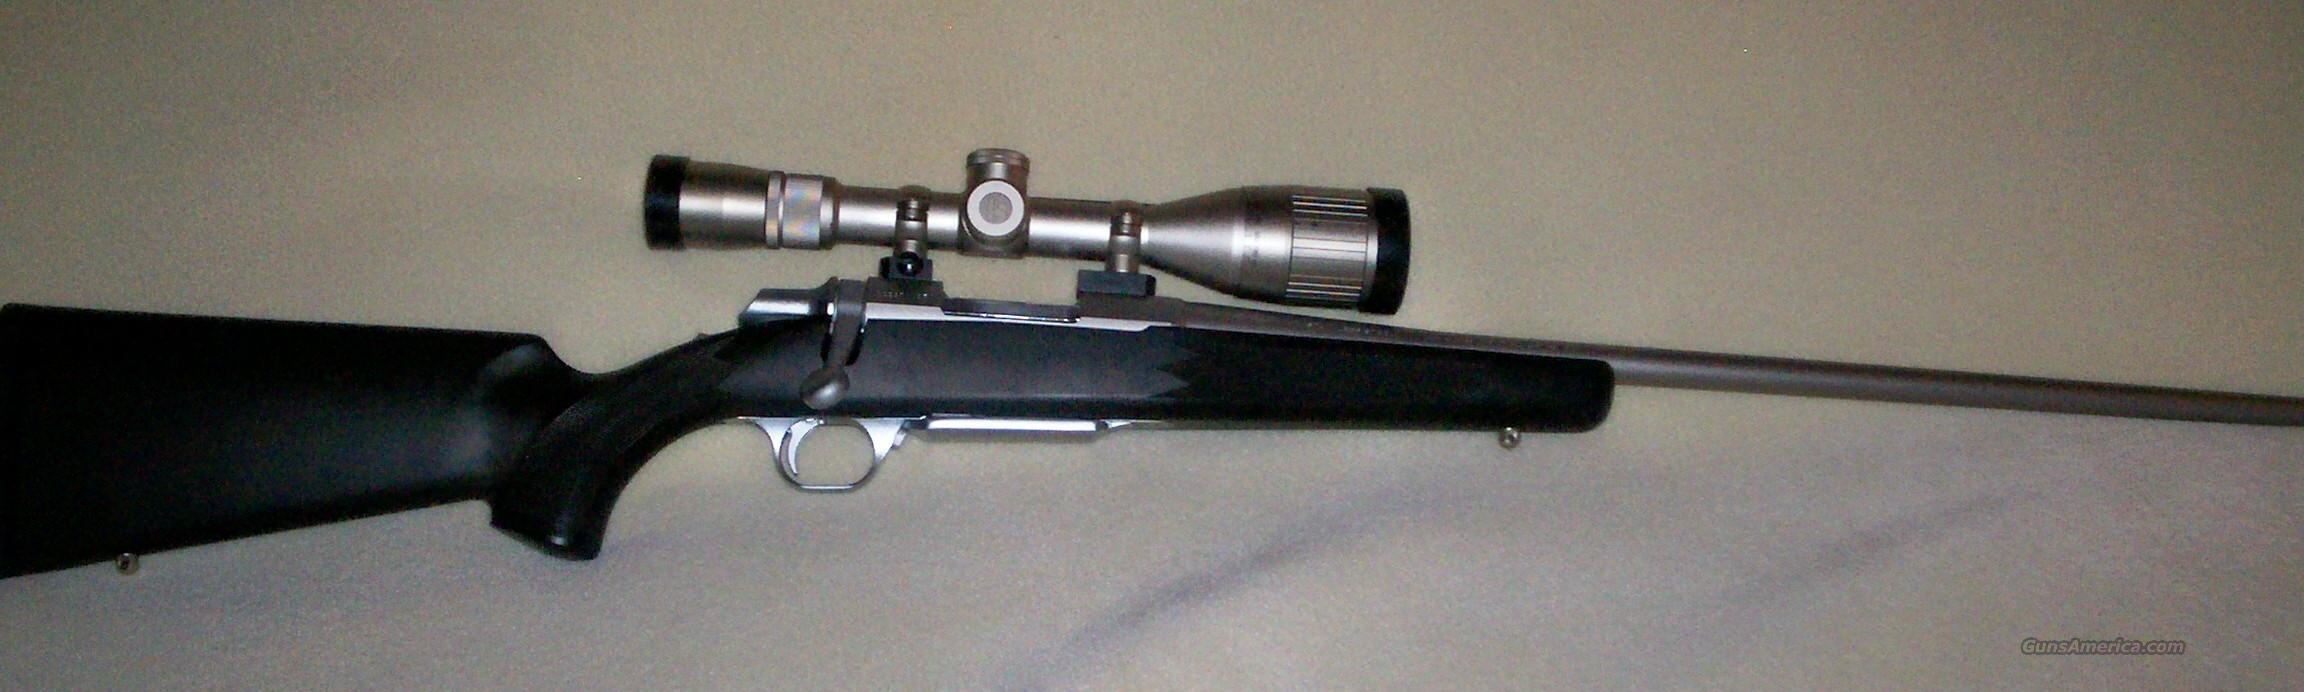 Browning A-Bolt II Stainless Stalker .243WSSM  Guns > Rifles > Browning Rifles > Bolt Action > Hunting > Stainless